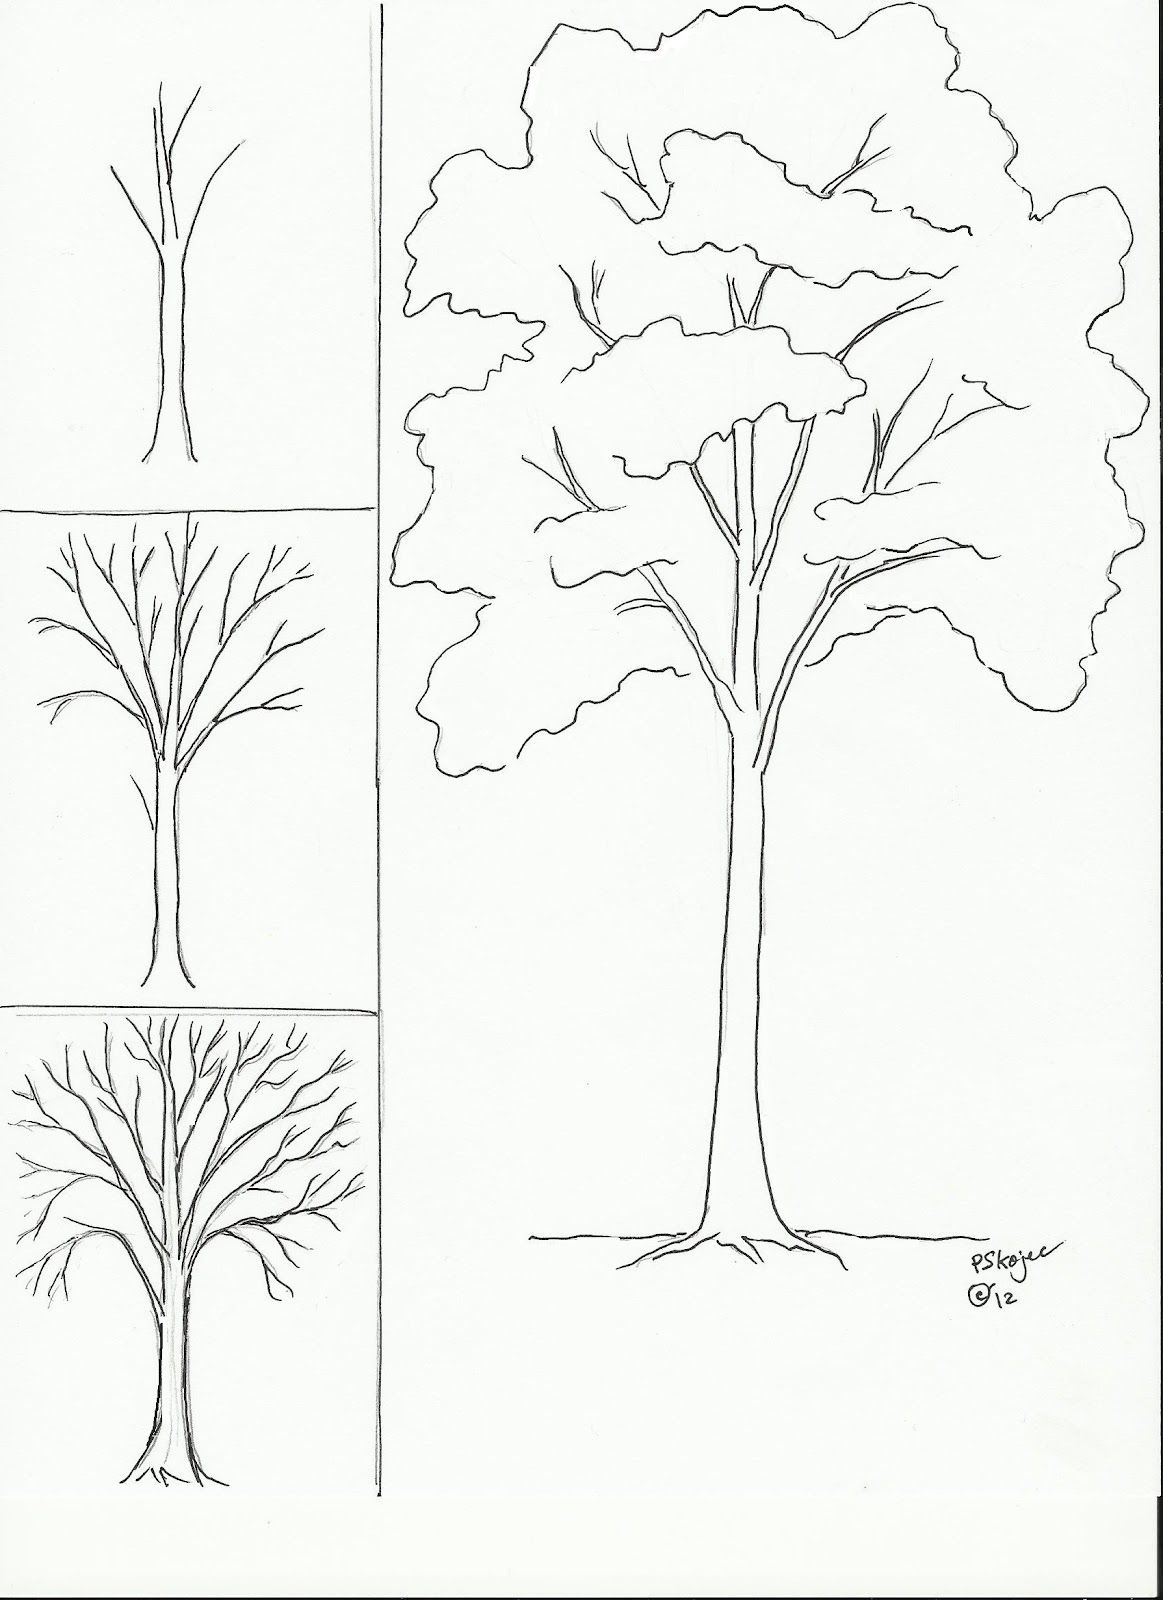 Uncategorized How To Draw Leaves On A Tree draw a tree art class ideas fontscalligraphy designs ideas